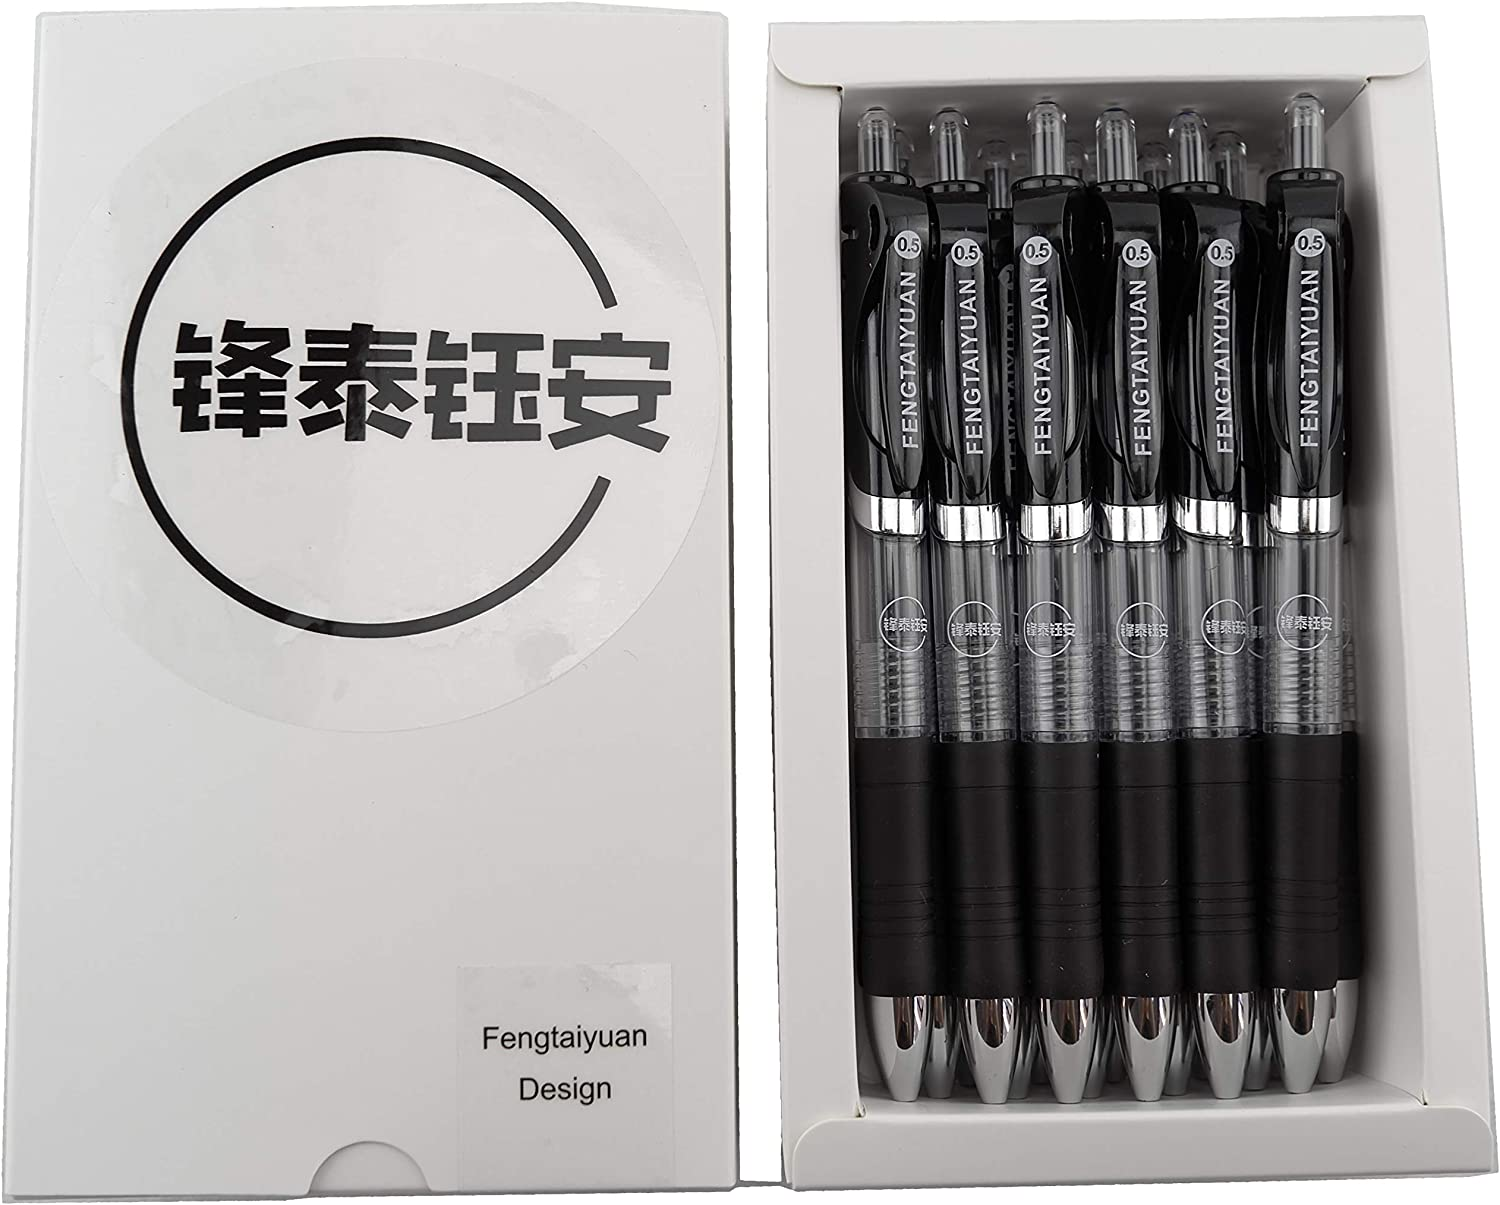 Fengtaiyuan ADP18 Retractable Gel Pens OFFicial mail order 0.5mm store Extra Ink Black